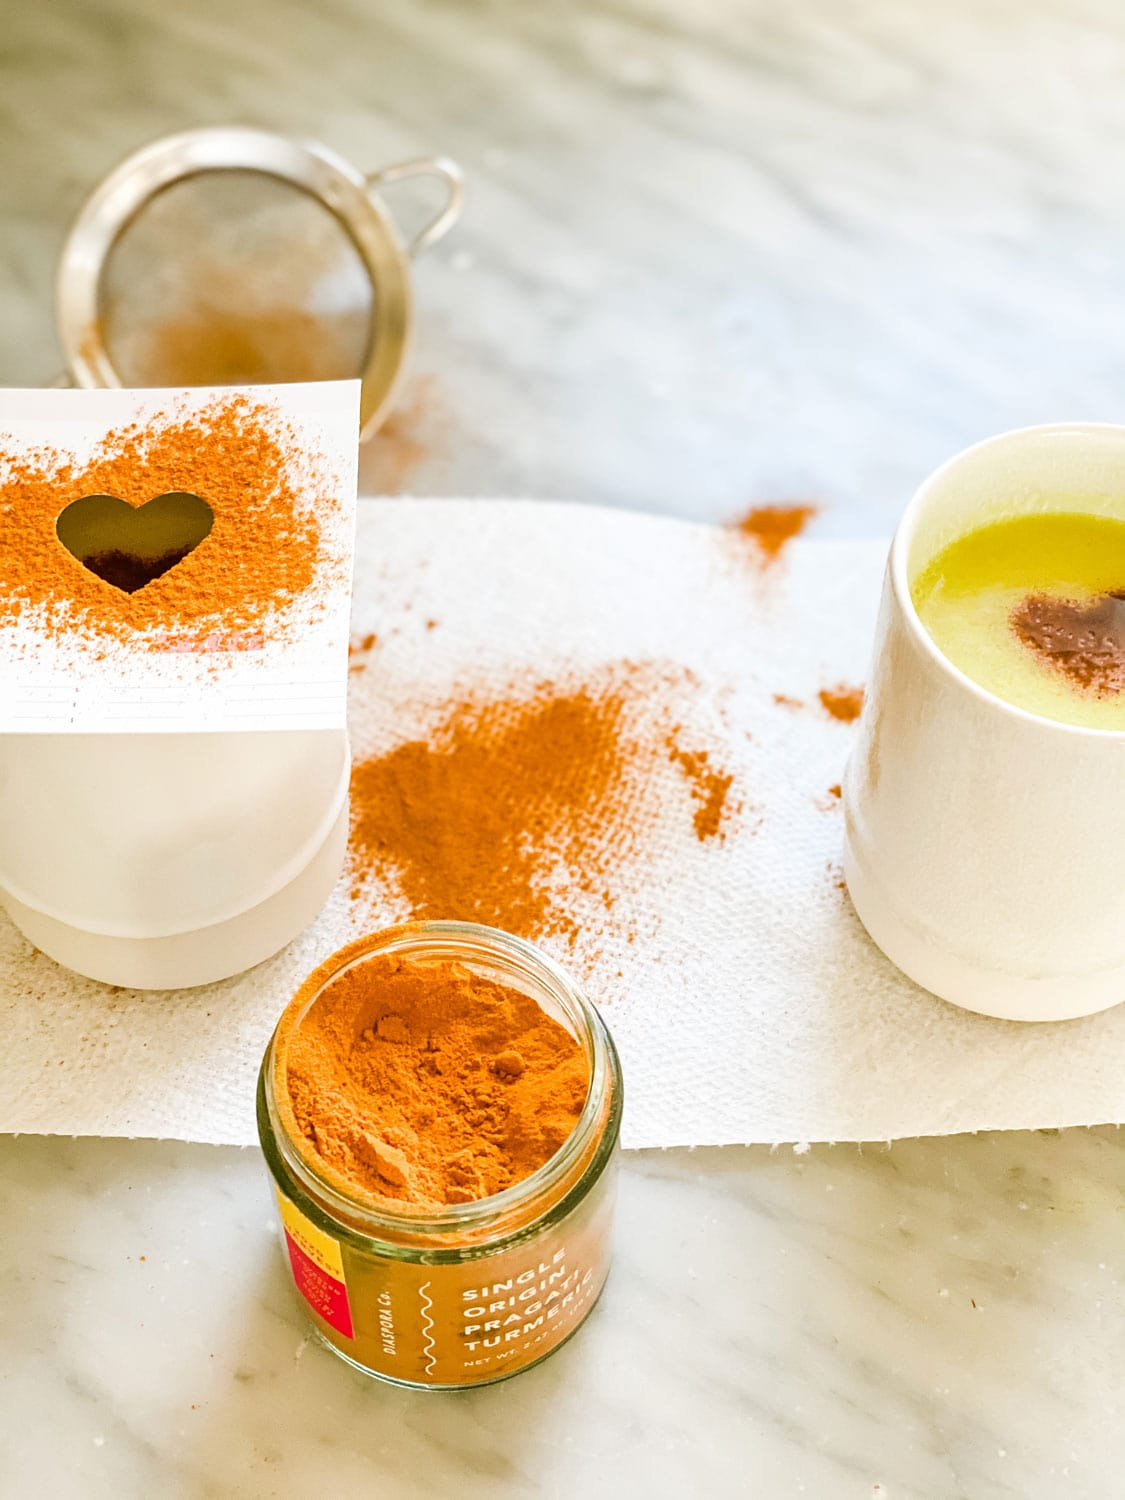 turmeric hearts on cup